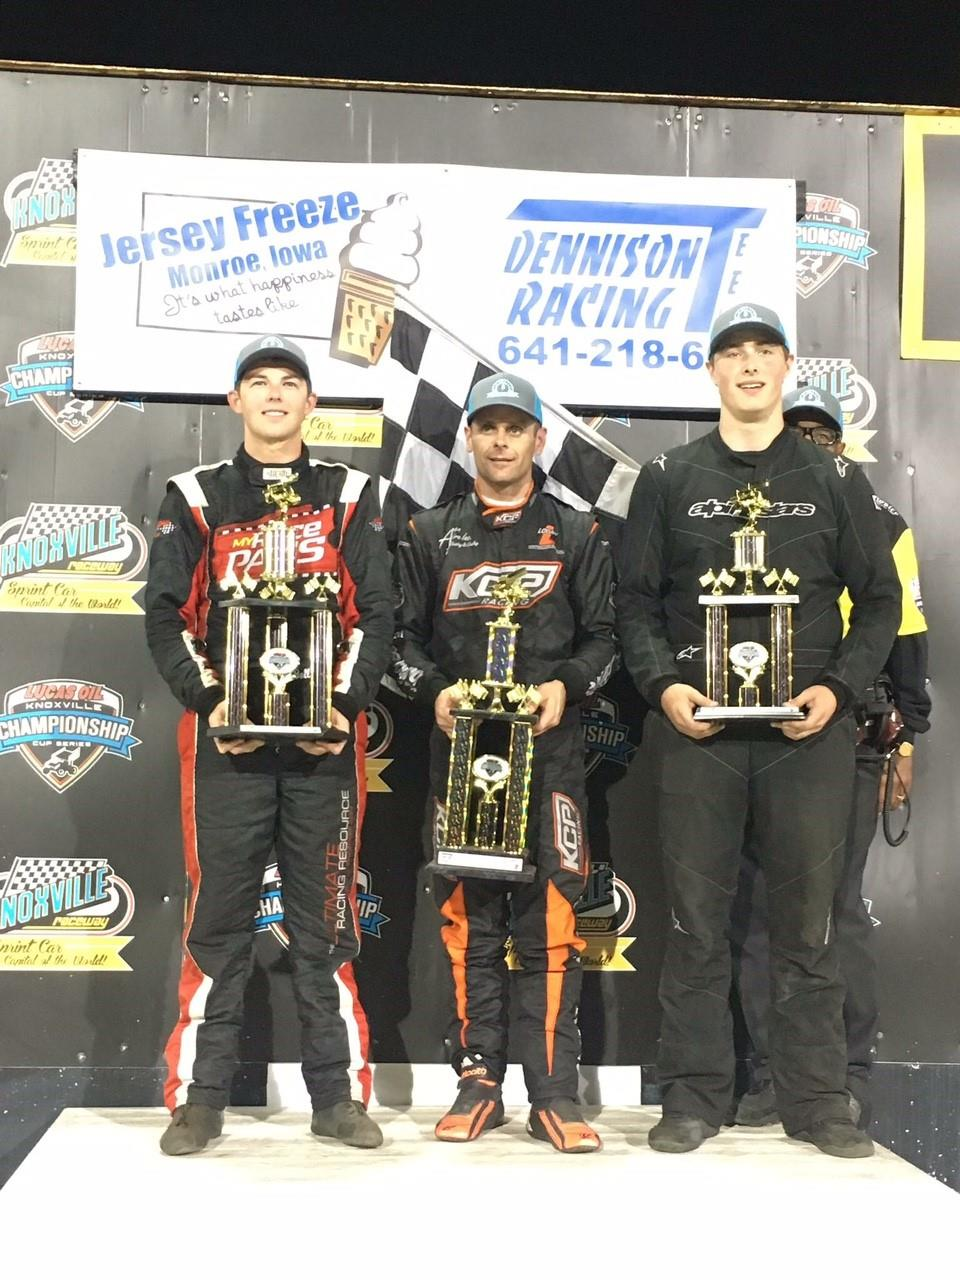 The three winners at Knoxville Saturday were Jamie Ball (360), Ian Madsen (410) and Evan Epperson (305) (Knoxville Raceway Photo)